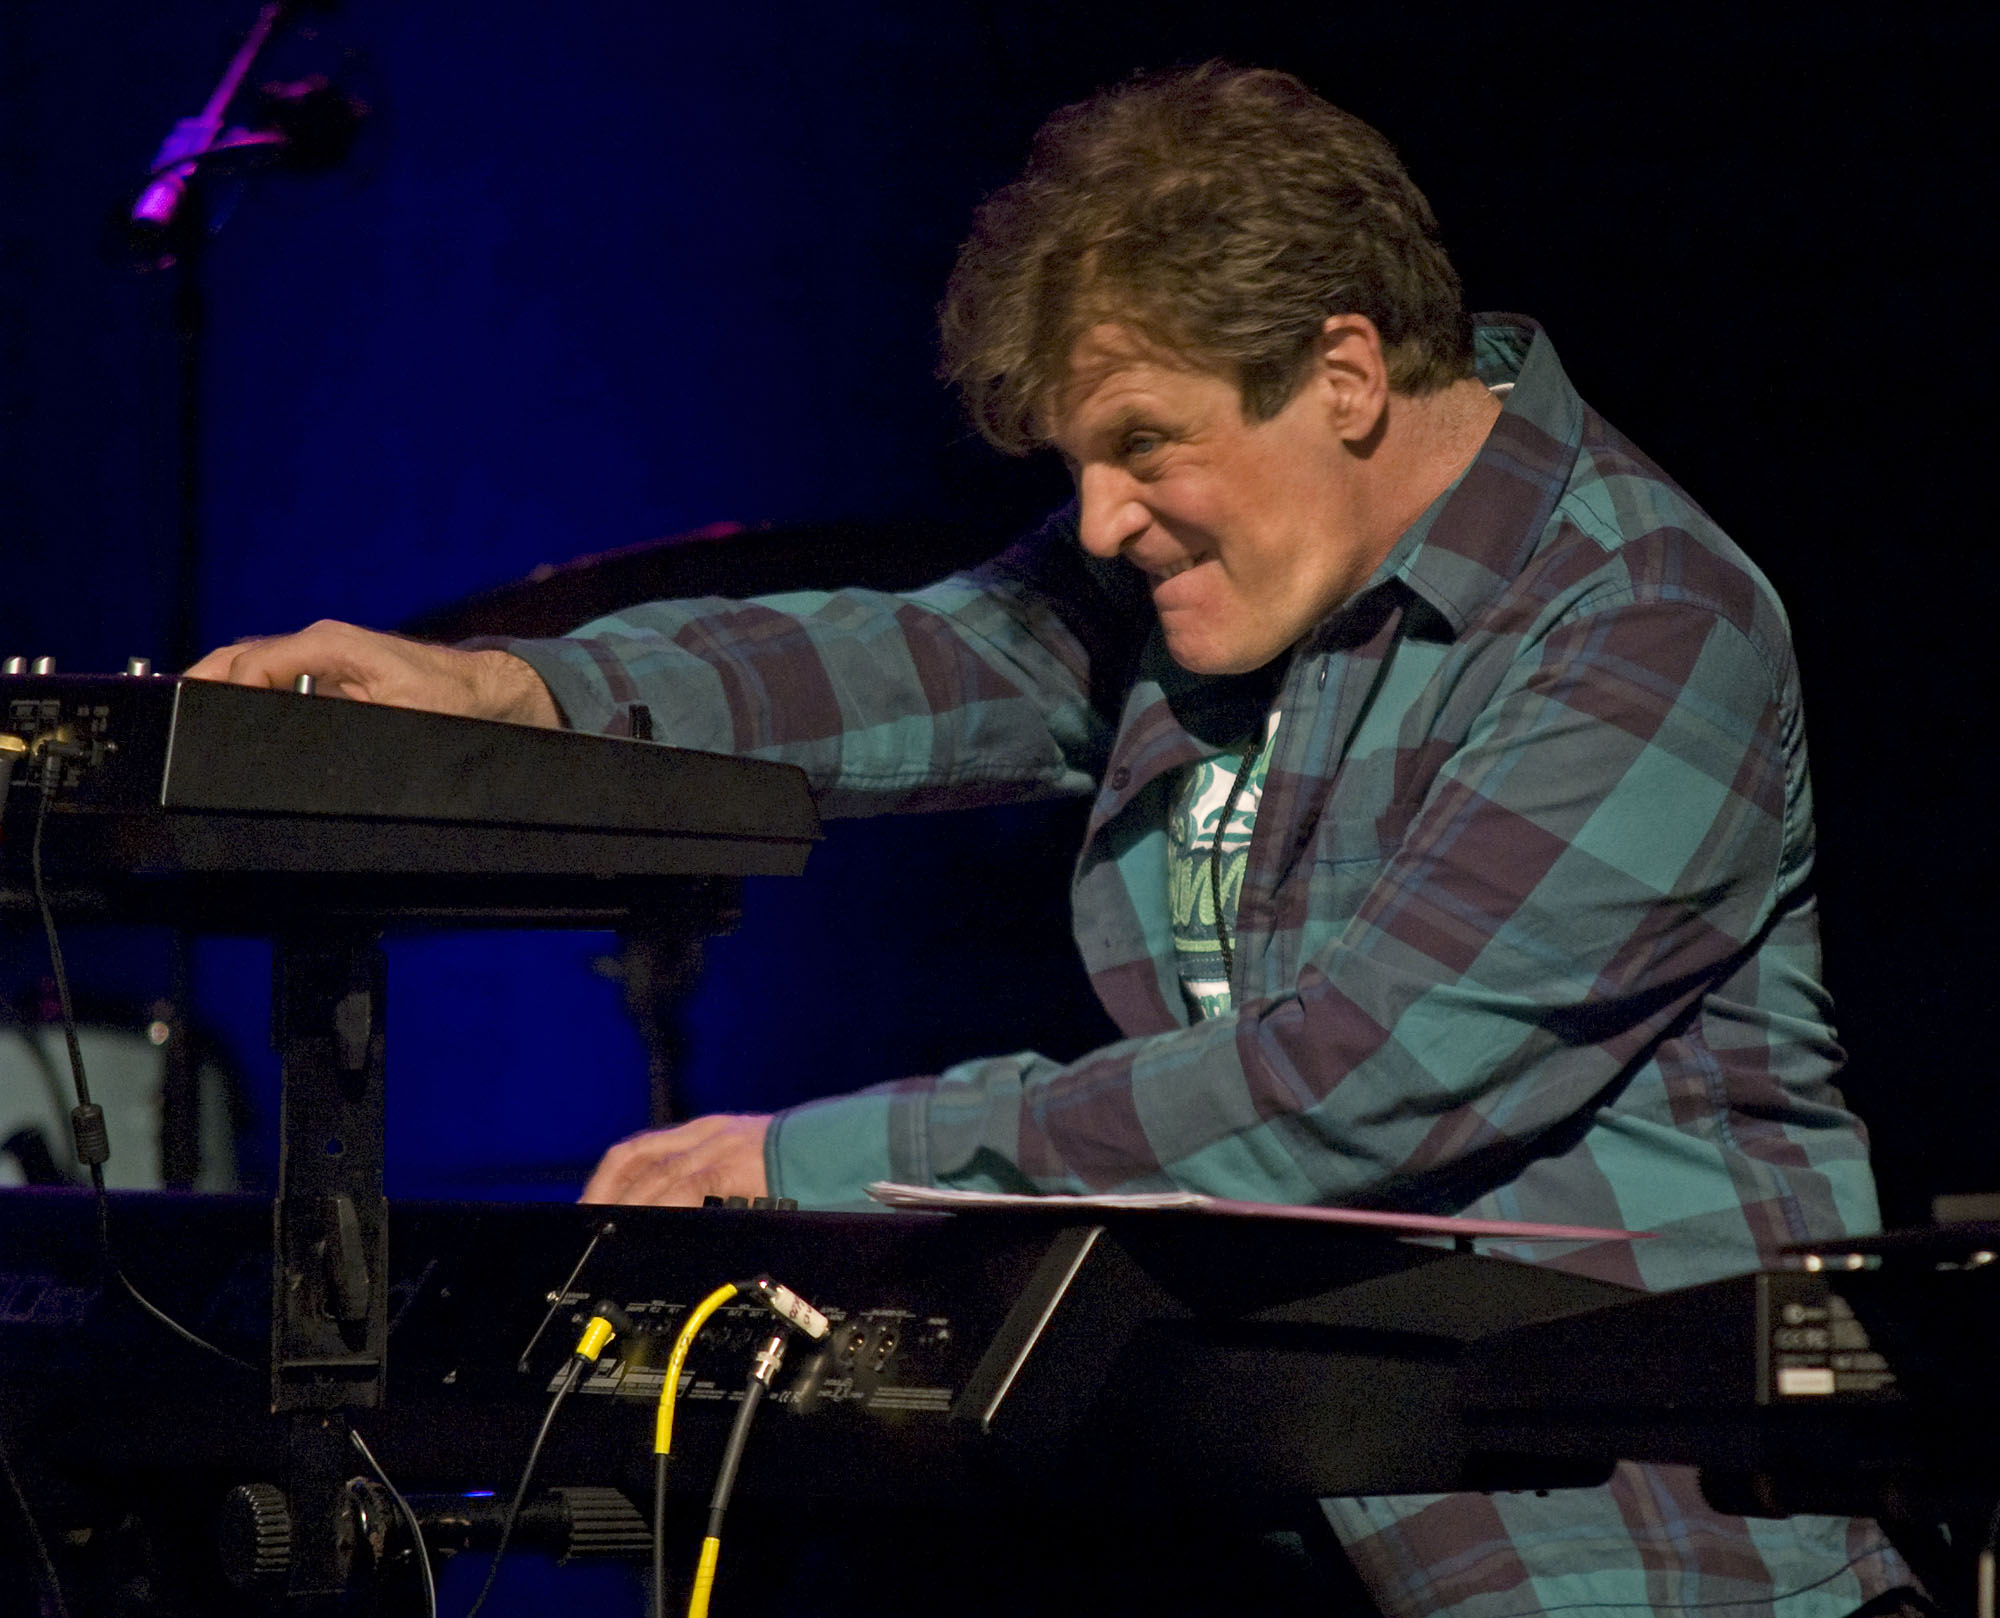 Gary Husband, Performing with John McLaughlin and the 4th Dimension at the 2010 New Universe Music Festival